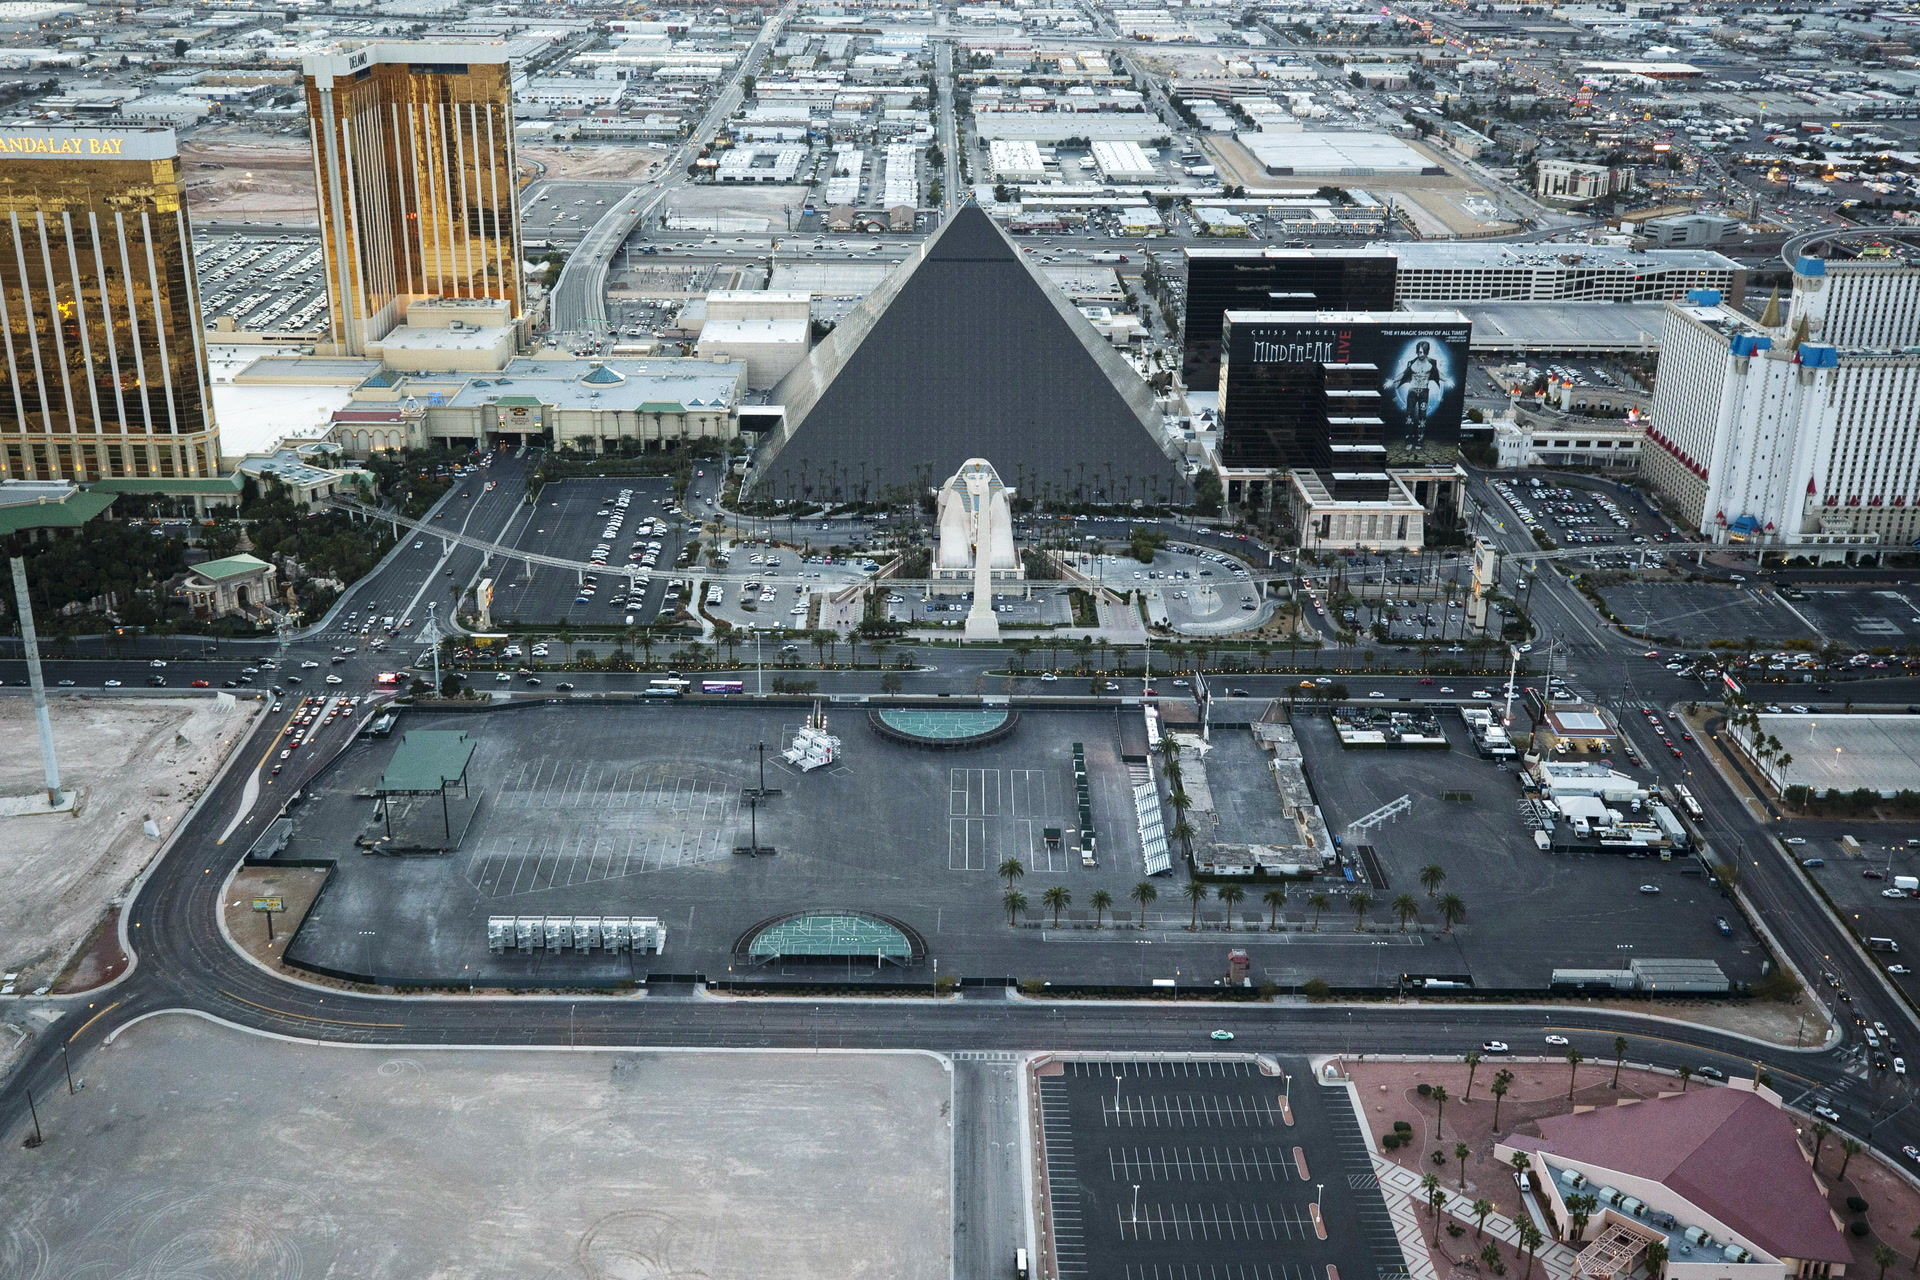 Las Vegas Shooting Site Being Converted To Community